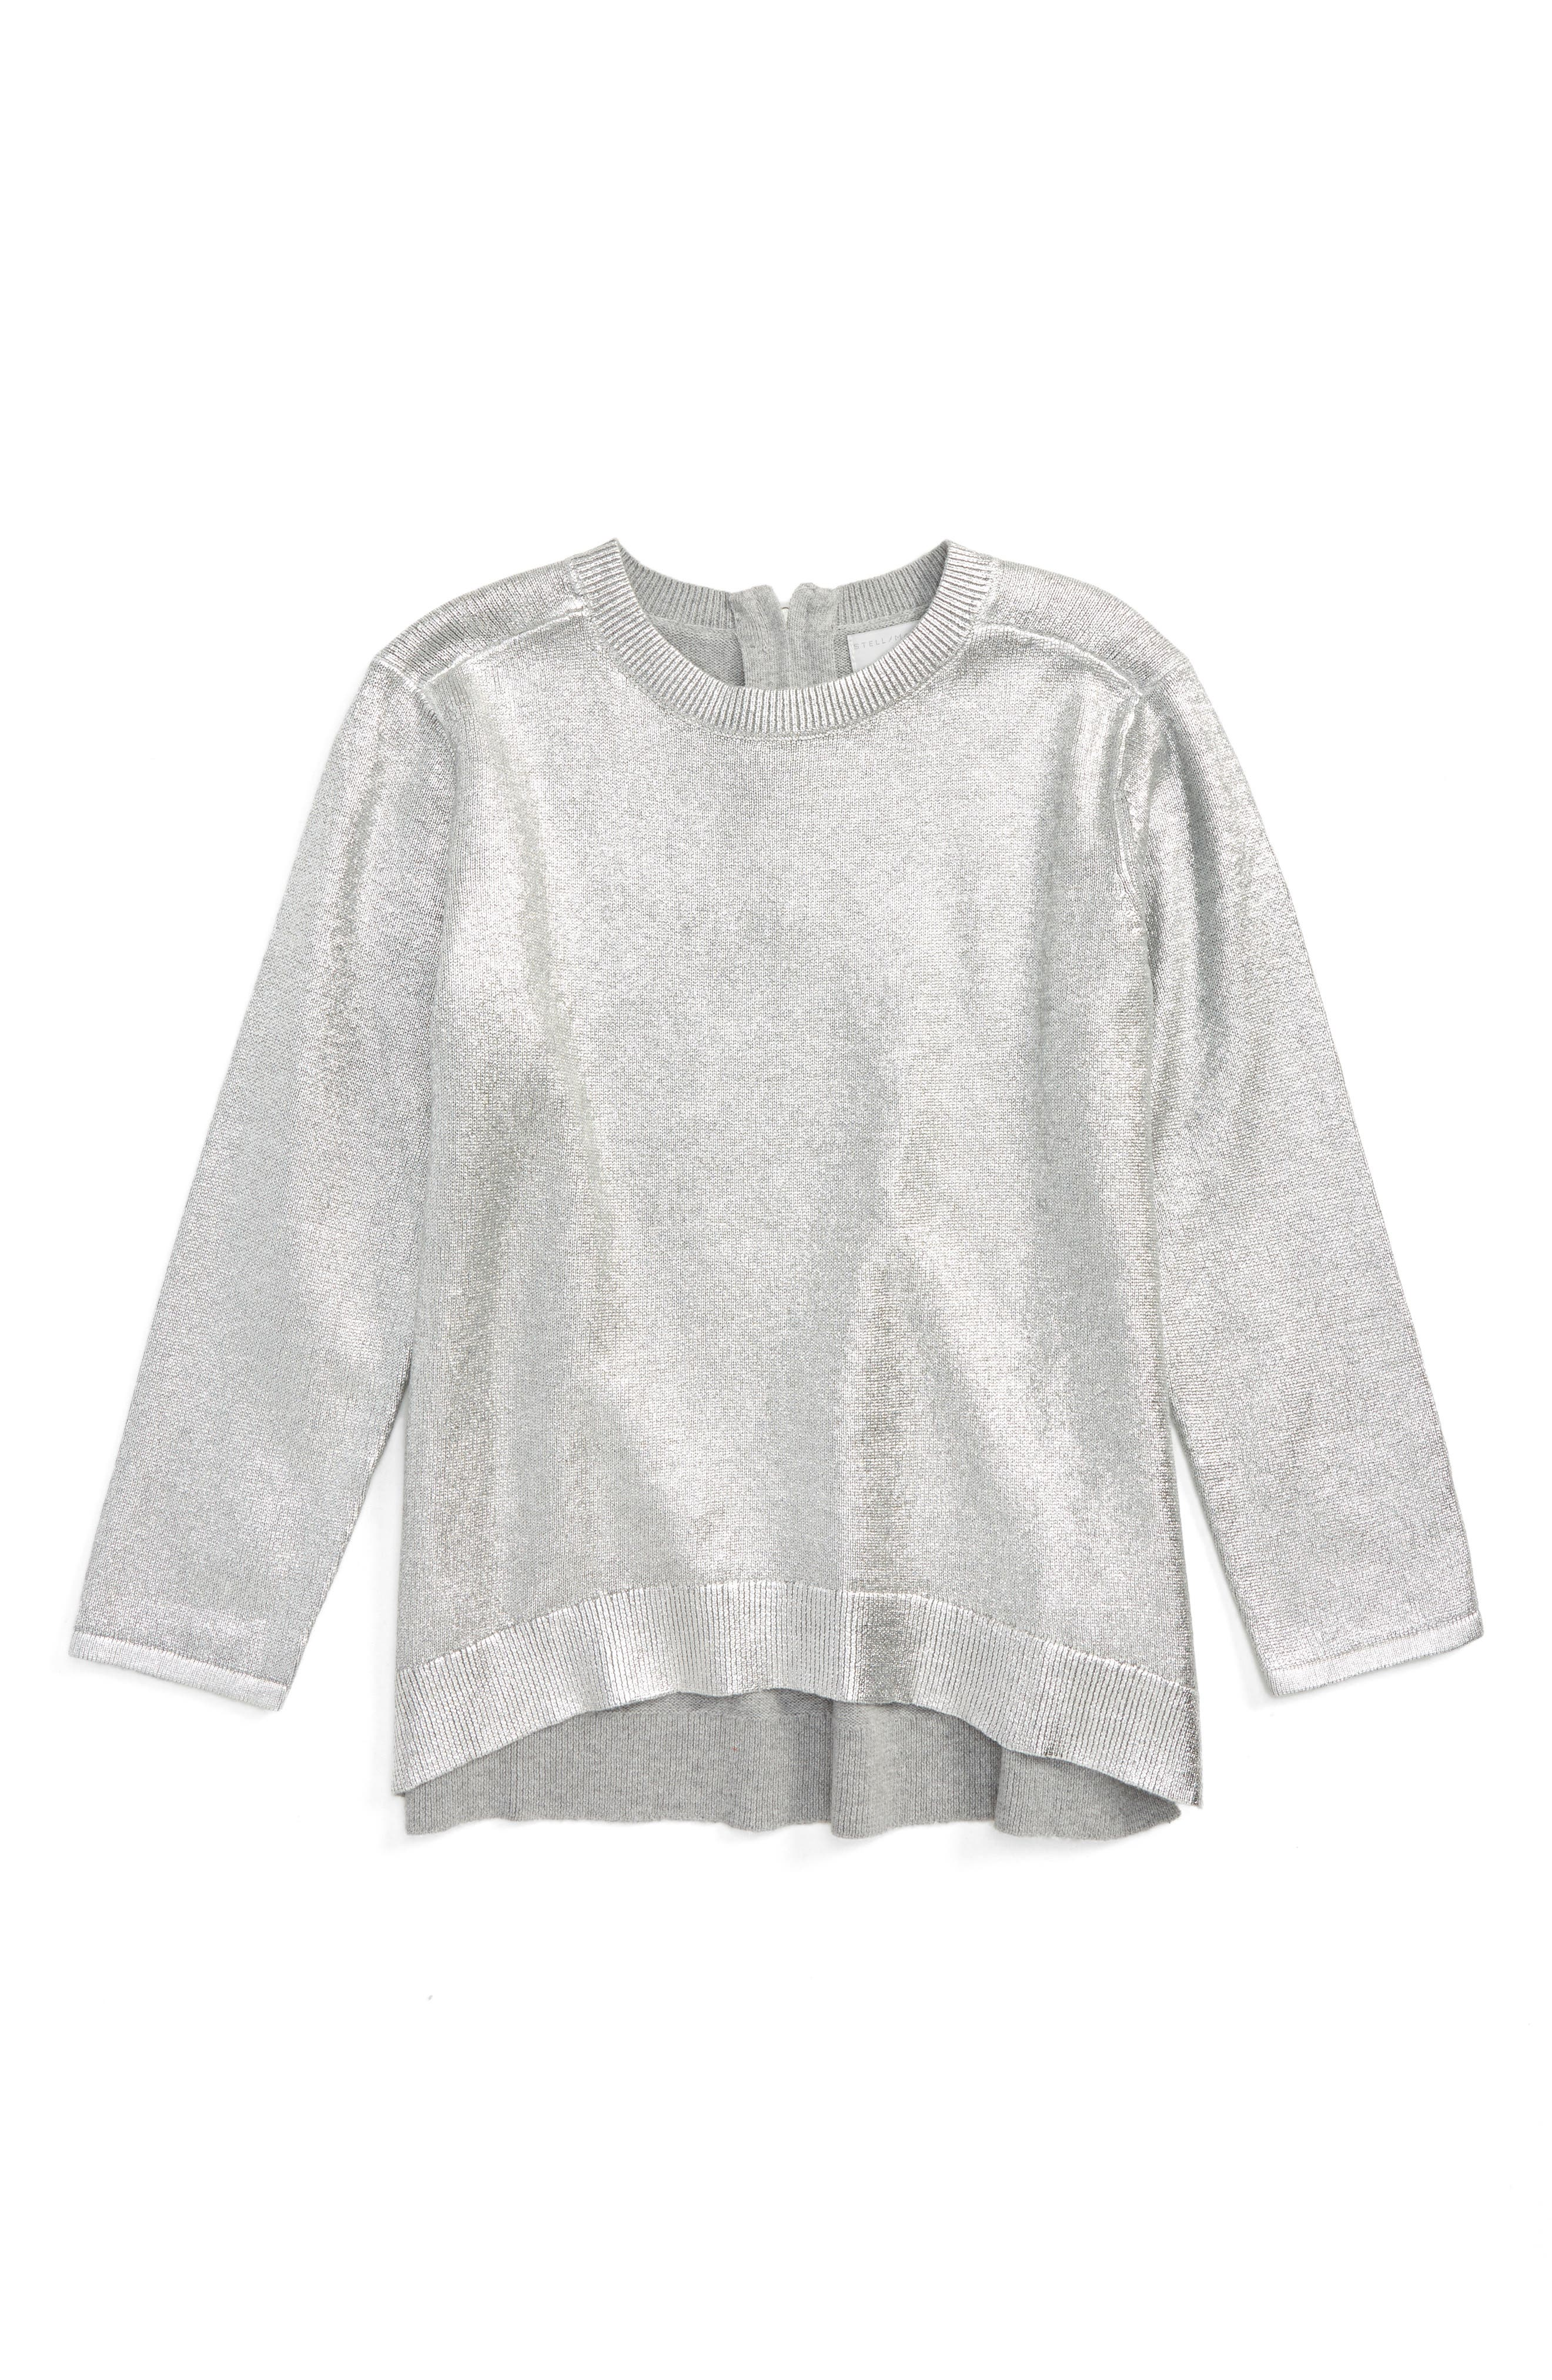 Main Image - Stella McCartney Kids Jewel Foil Sweater (Toddler Girls, Little Girls & Big Girls)